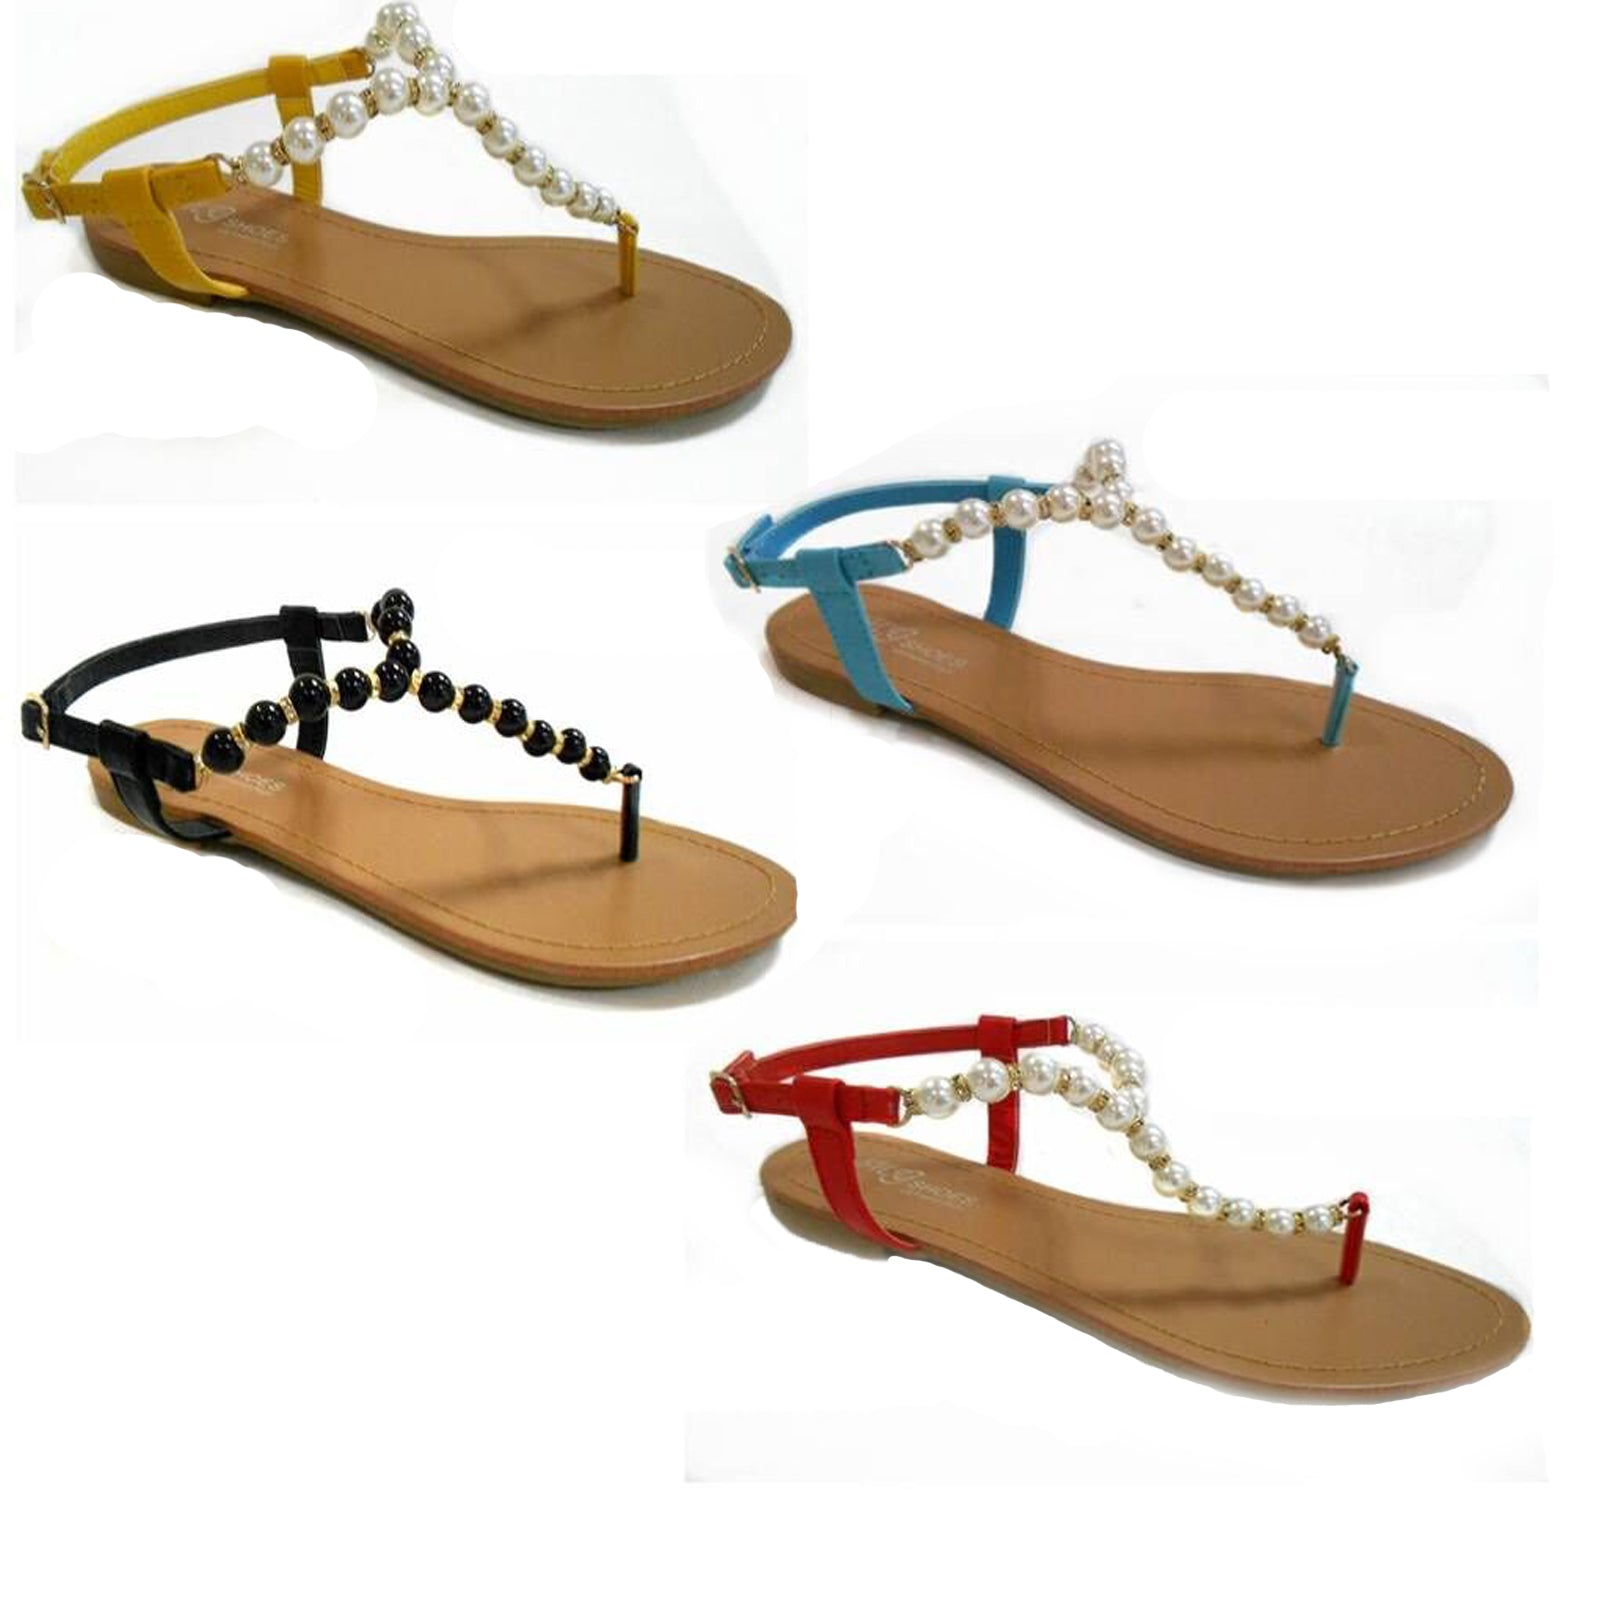 Wholesale Women's SHOES beaded thong sandals ncpb3